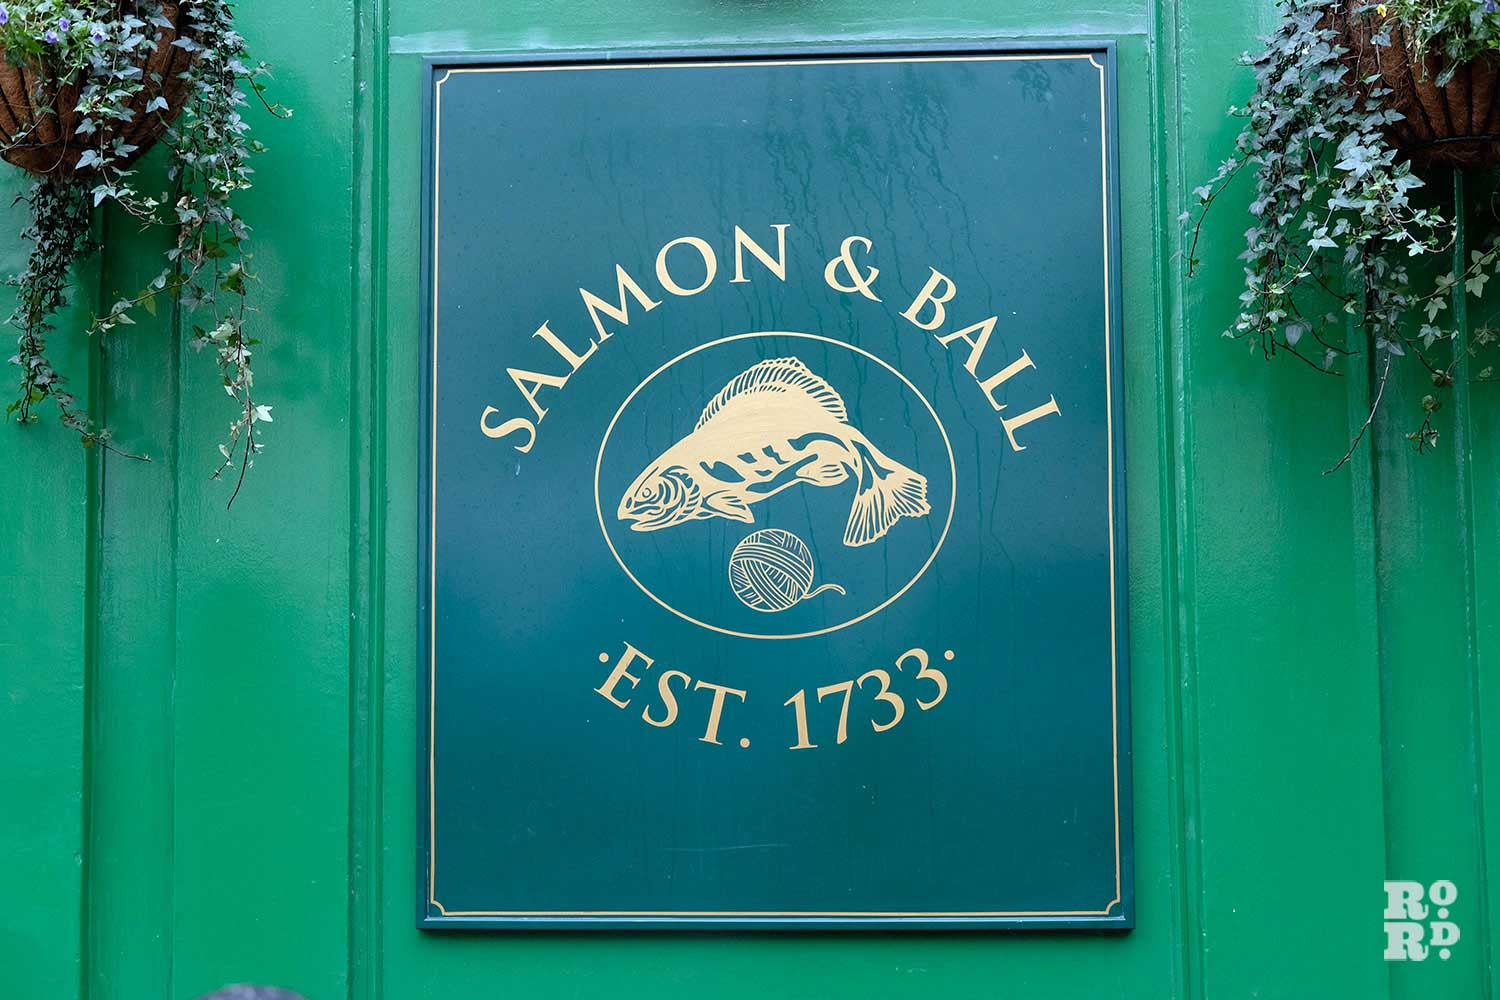 The Salmon and Ball pub plaque